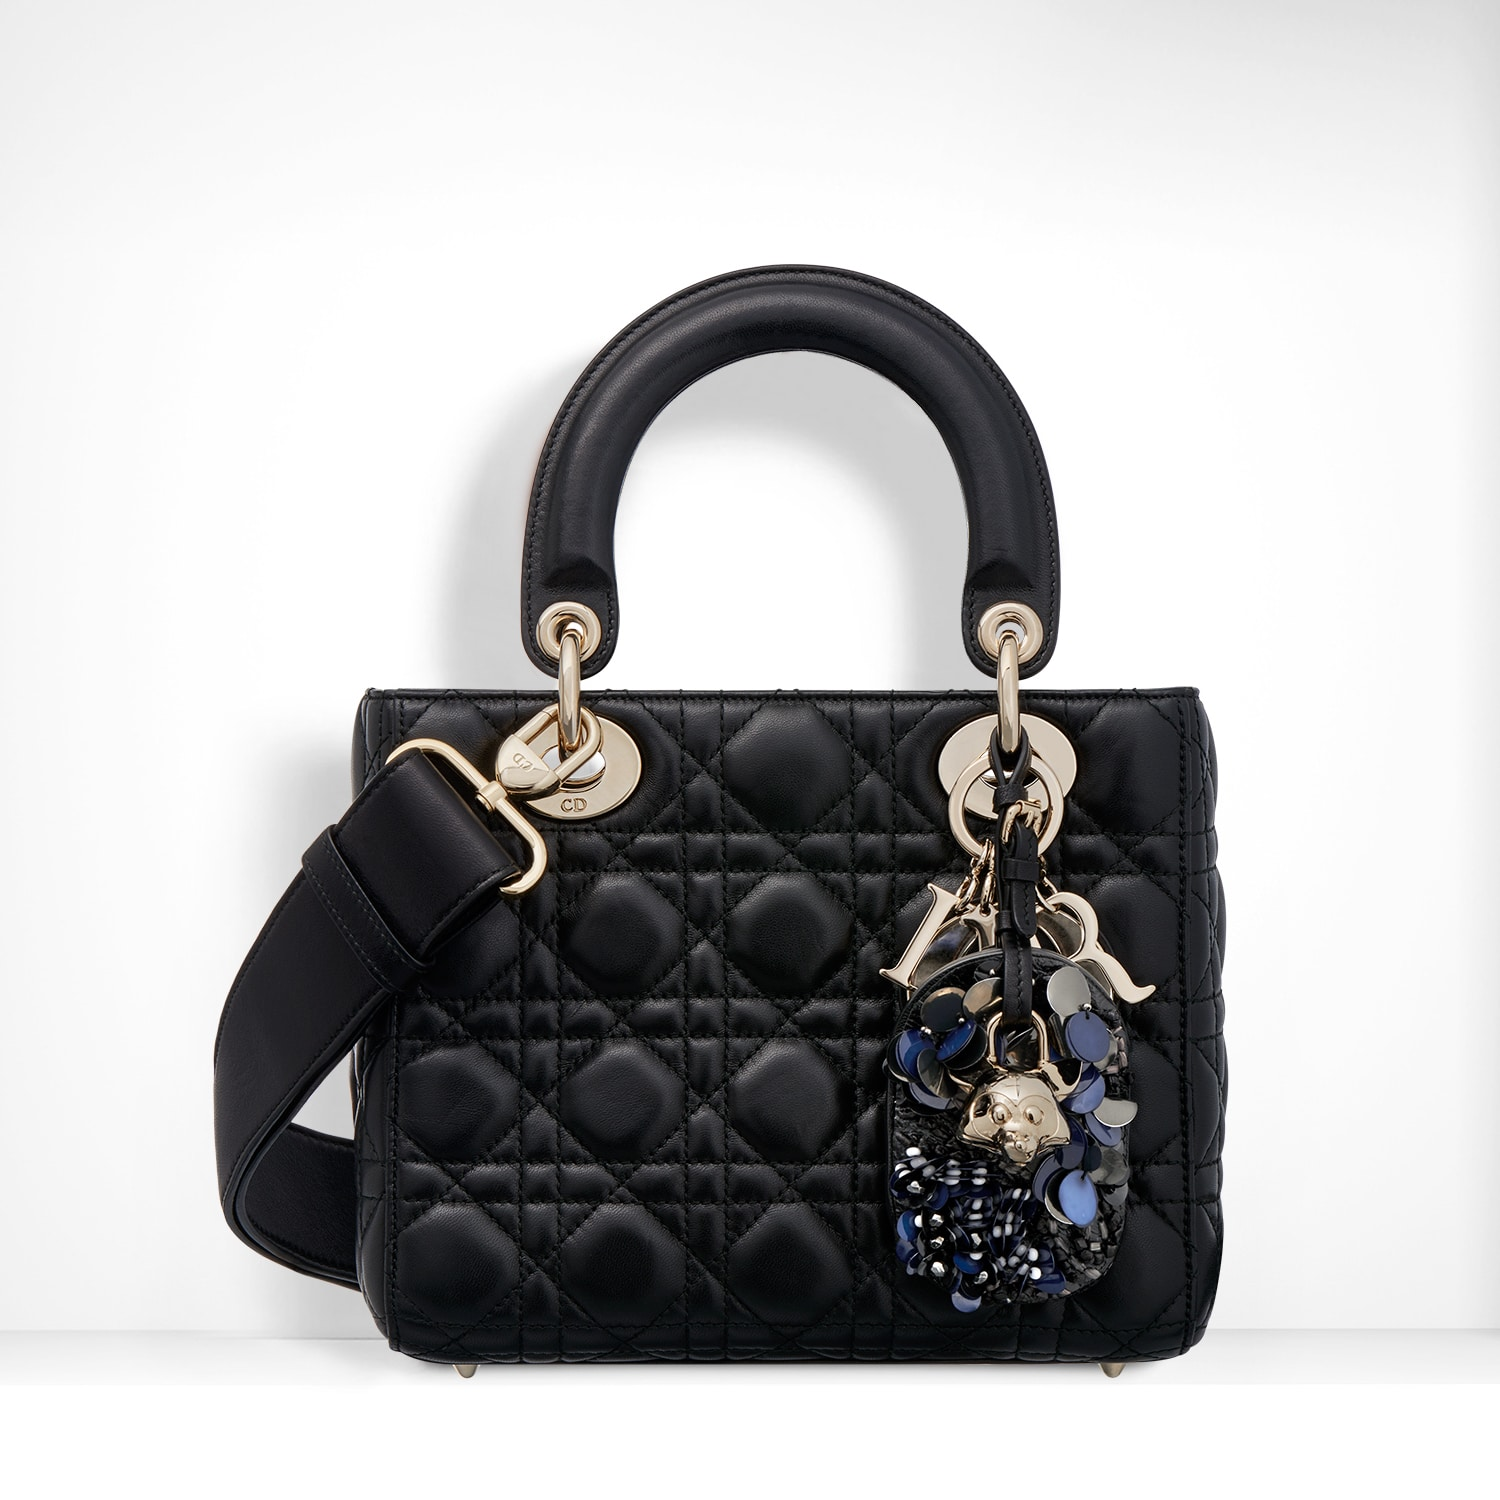 Dior Black Lambskin With Embroidered Address Tag Lady Bag